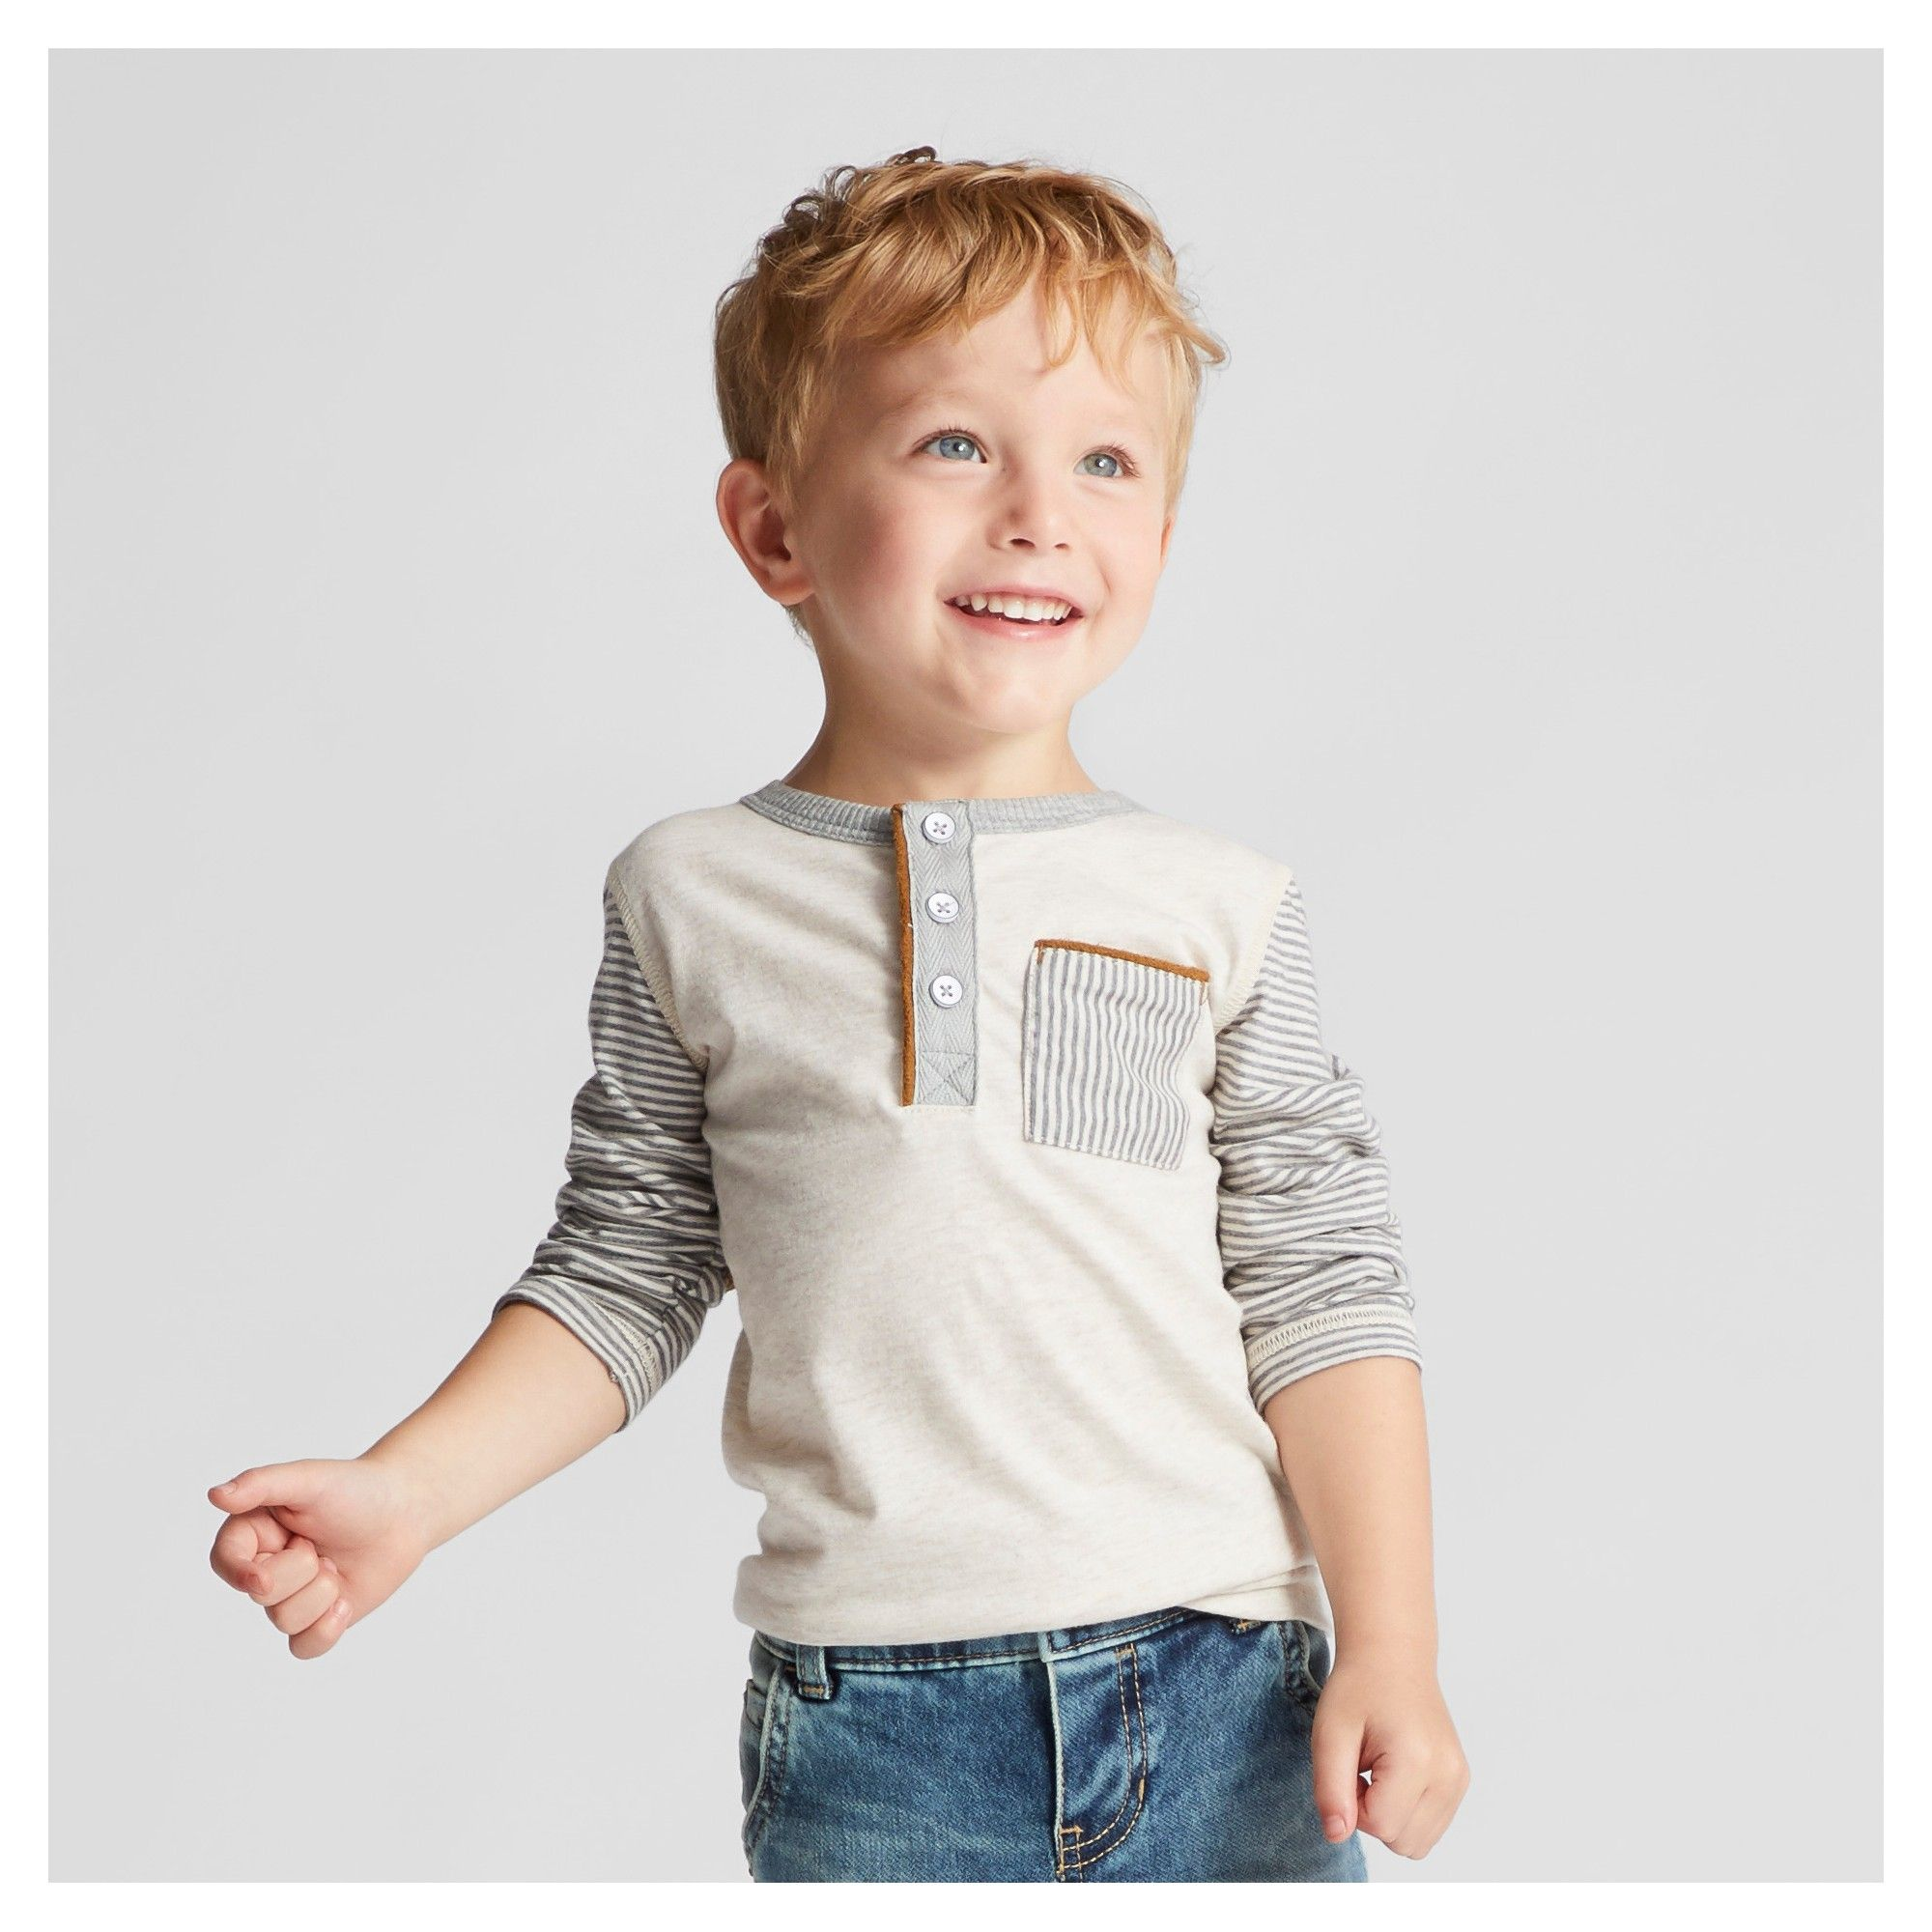 d9132d1e4ad Toddler Boys  Long Sleeve Henley Shirt Genuine Kids from OshKosh - Oatmeal  12M